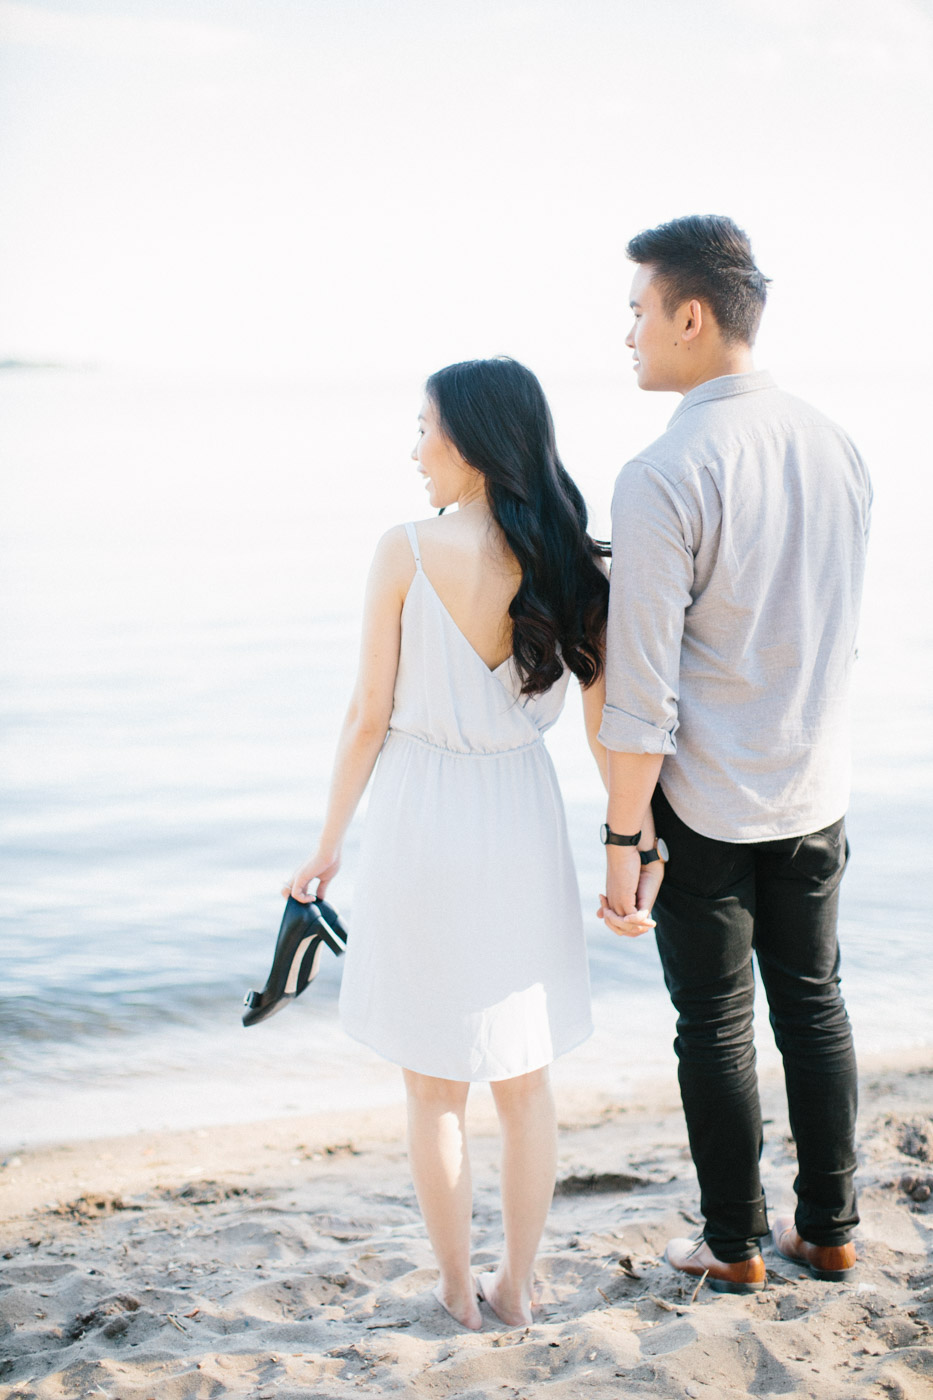 toronto_wedding_photographer_engagement_beach-91.jpg